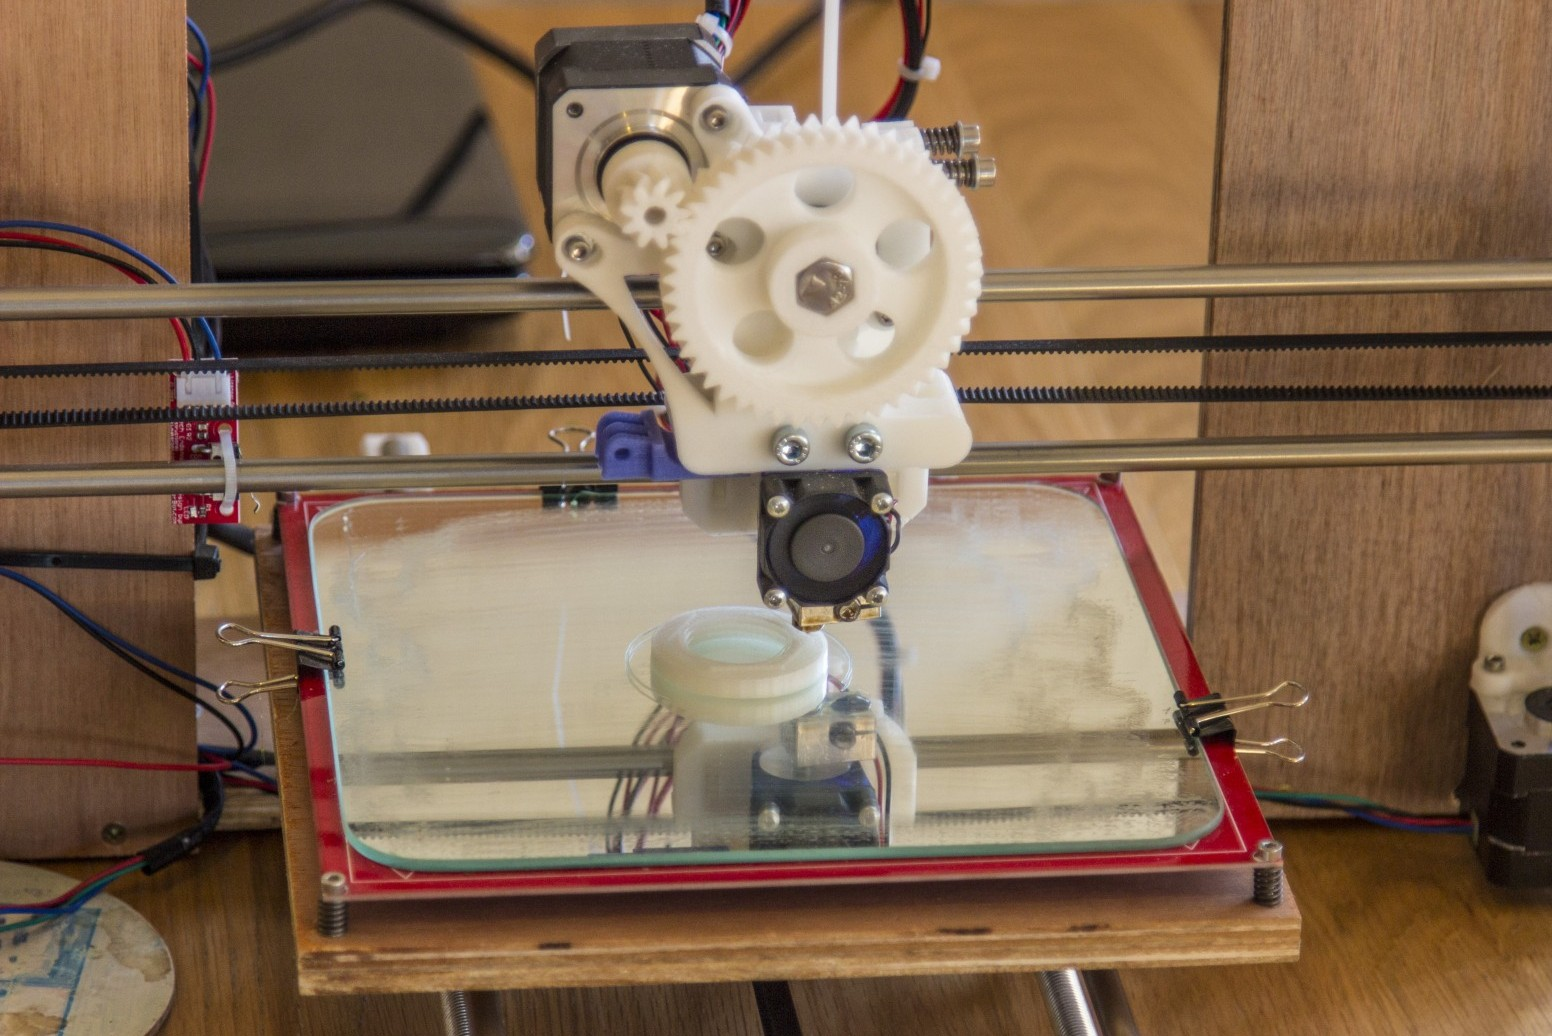 3D Printing and Development